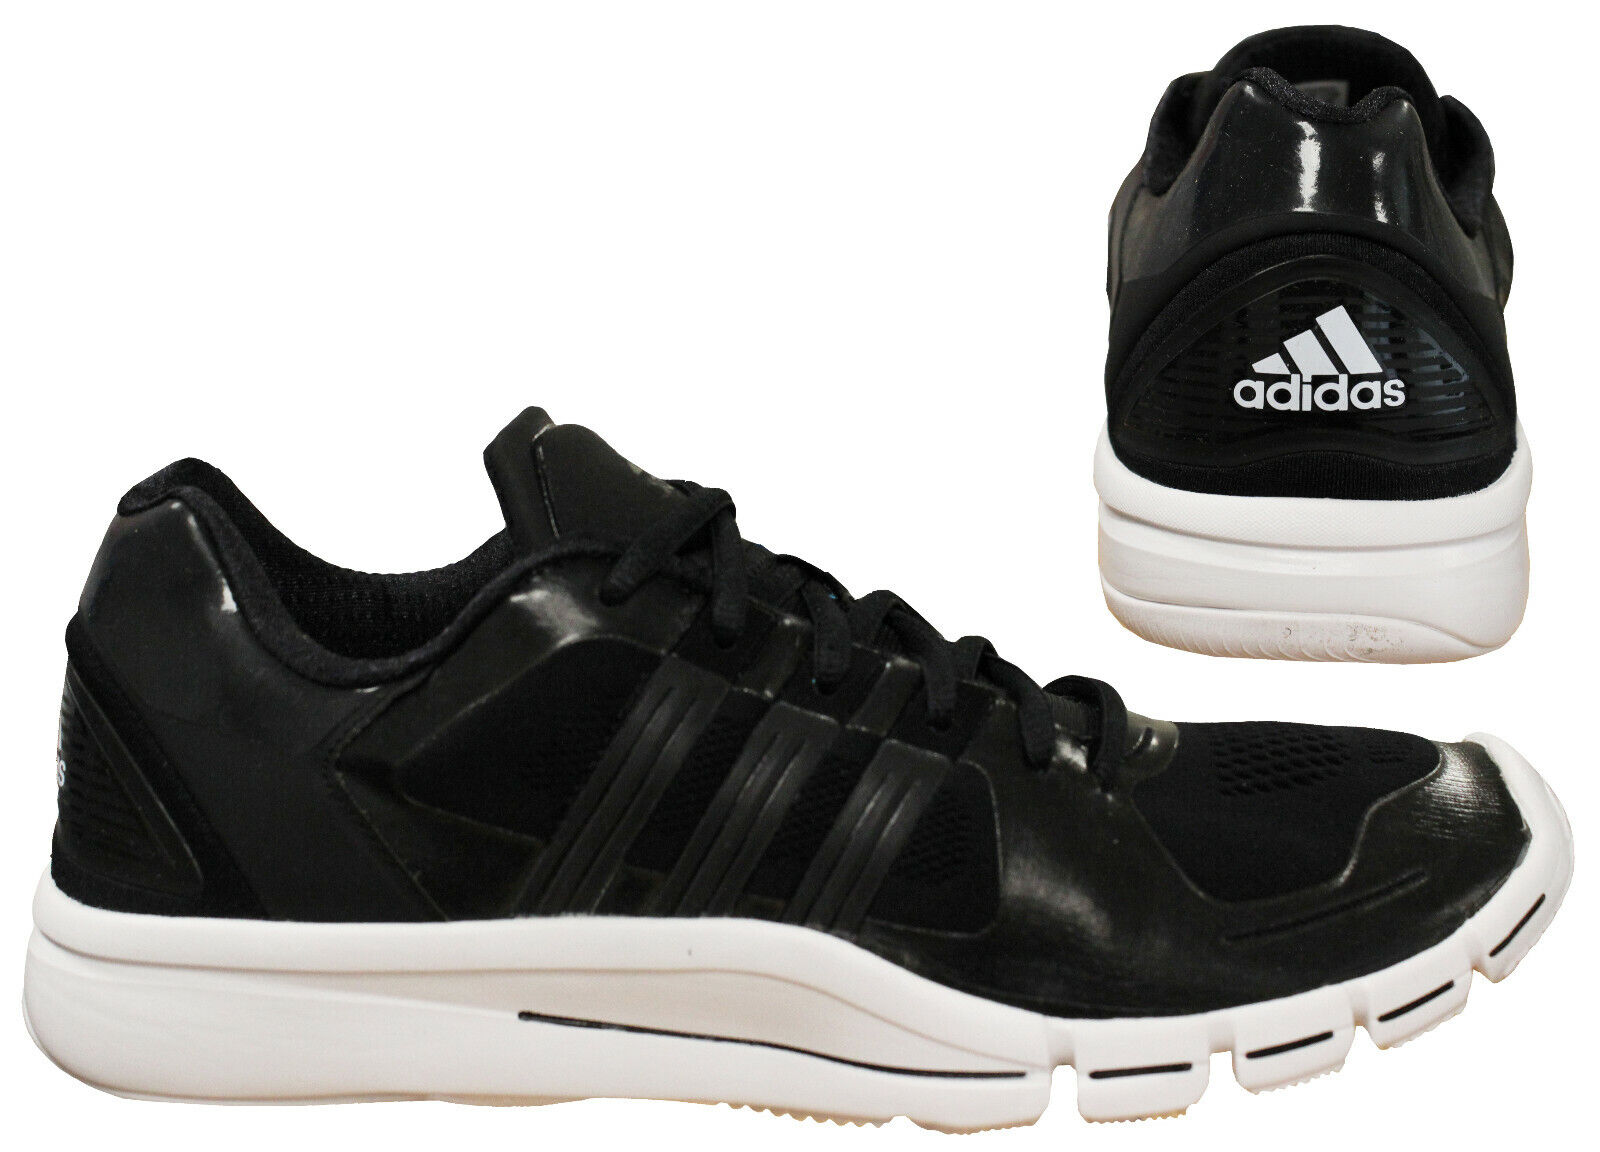 Details about Adidas Performance Adipure 360.2 Mens Running Shoes Black Trainers G97742 B29E